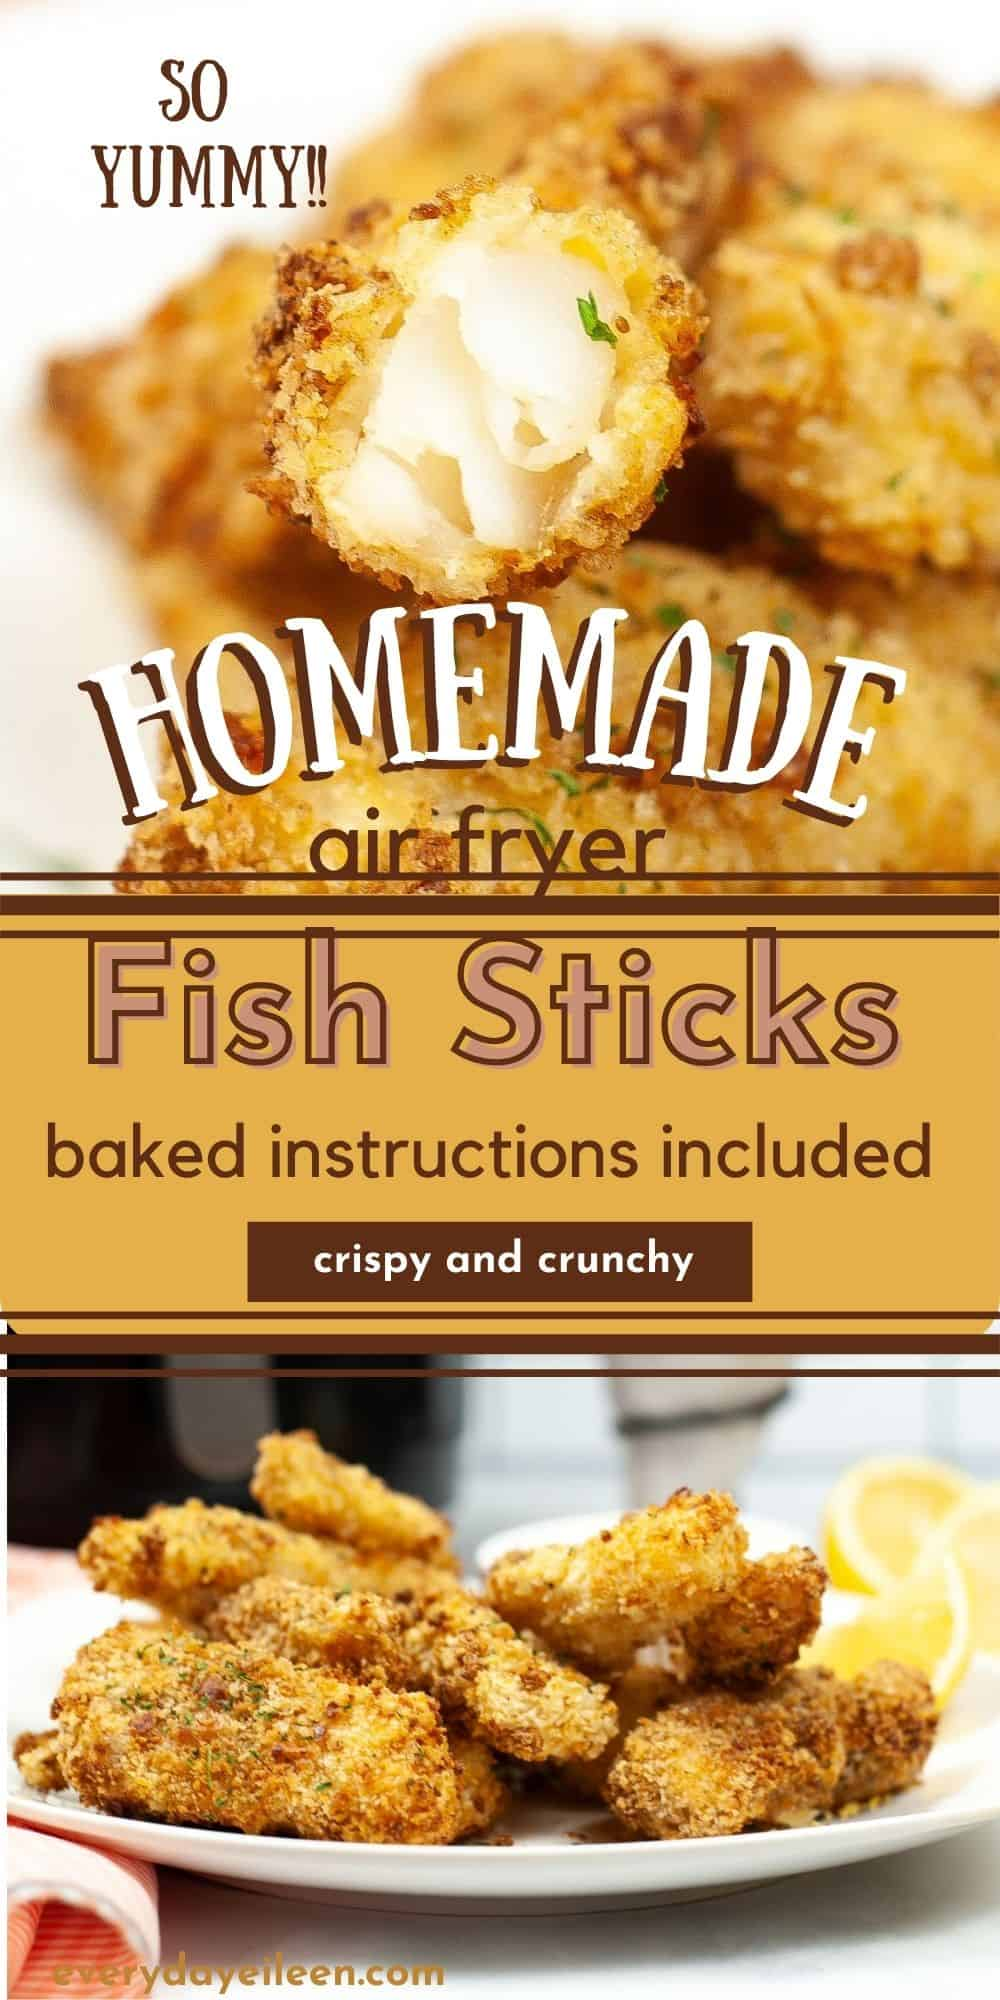 Homemade Air Fryer Fish Sticks, with a crispy crunchy Old Bay Seasoned Panko crust with tender fresh cod fish. So much better than any store bought box. Serve with your favorite tartar or cocktail sauce. Make a big batch and freeze some for later. Oven Baked Fish Stick Instructions included. #airfryerfishsticks #fishsticks #airfryerfish #everydayeileen via @everydayeileen